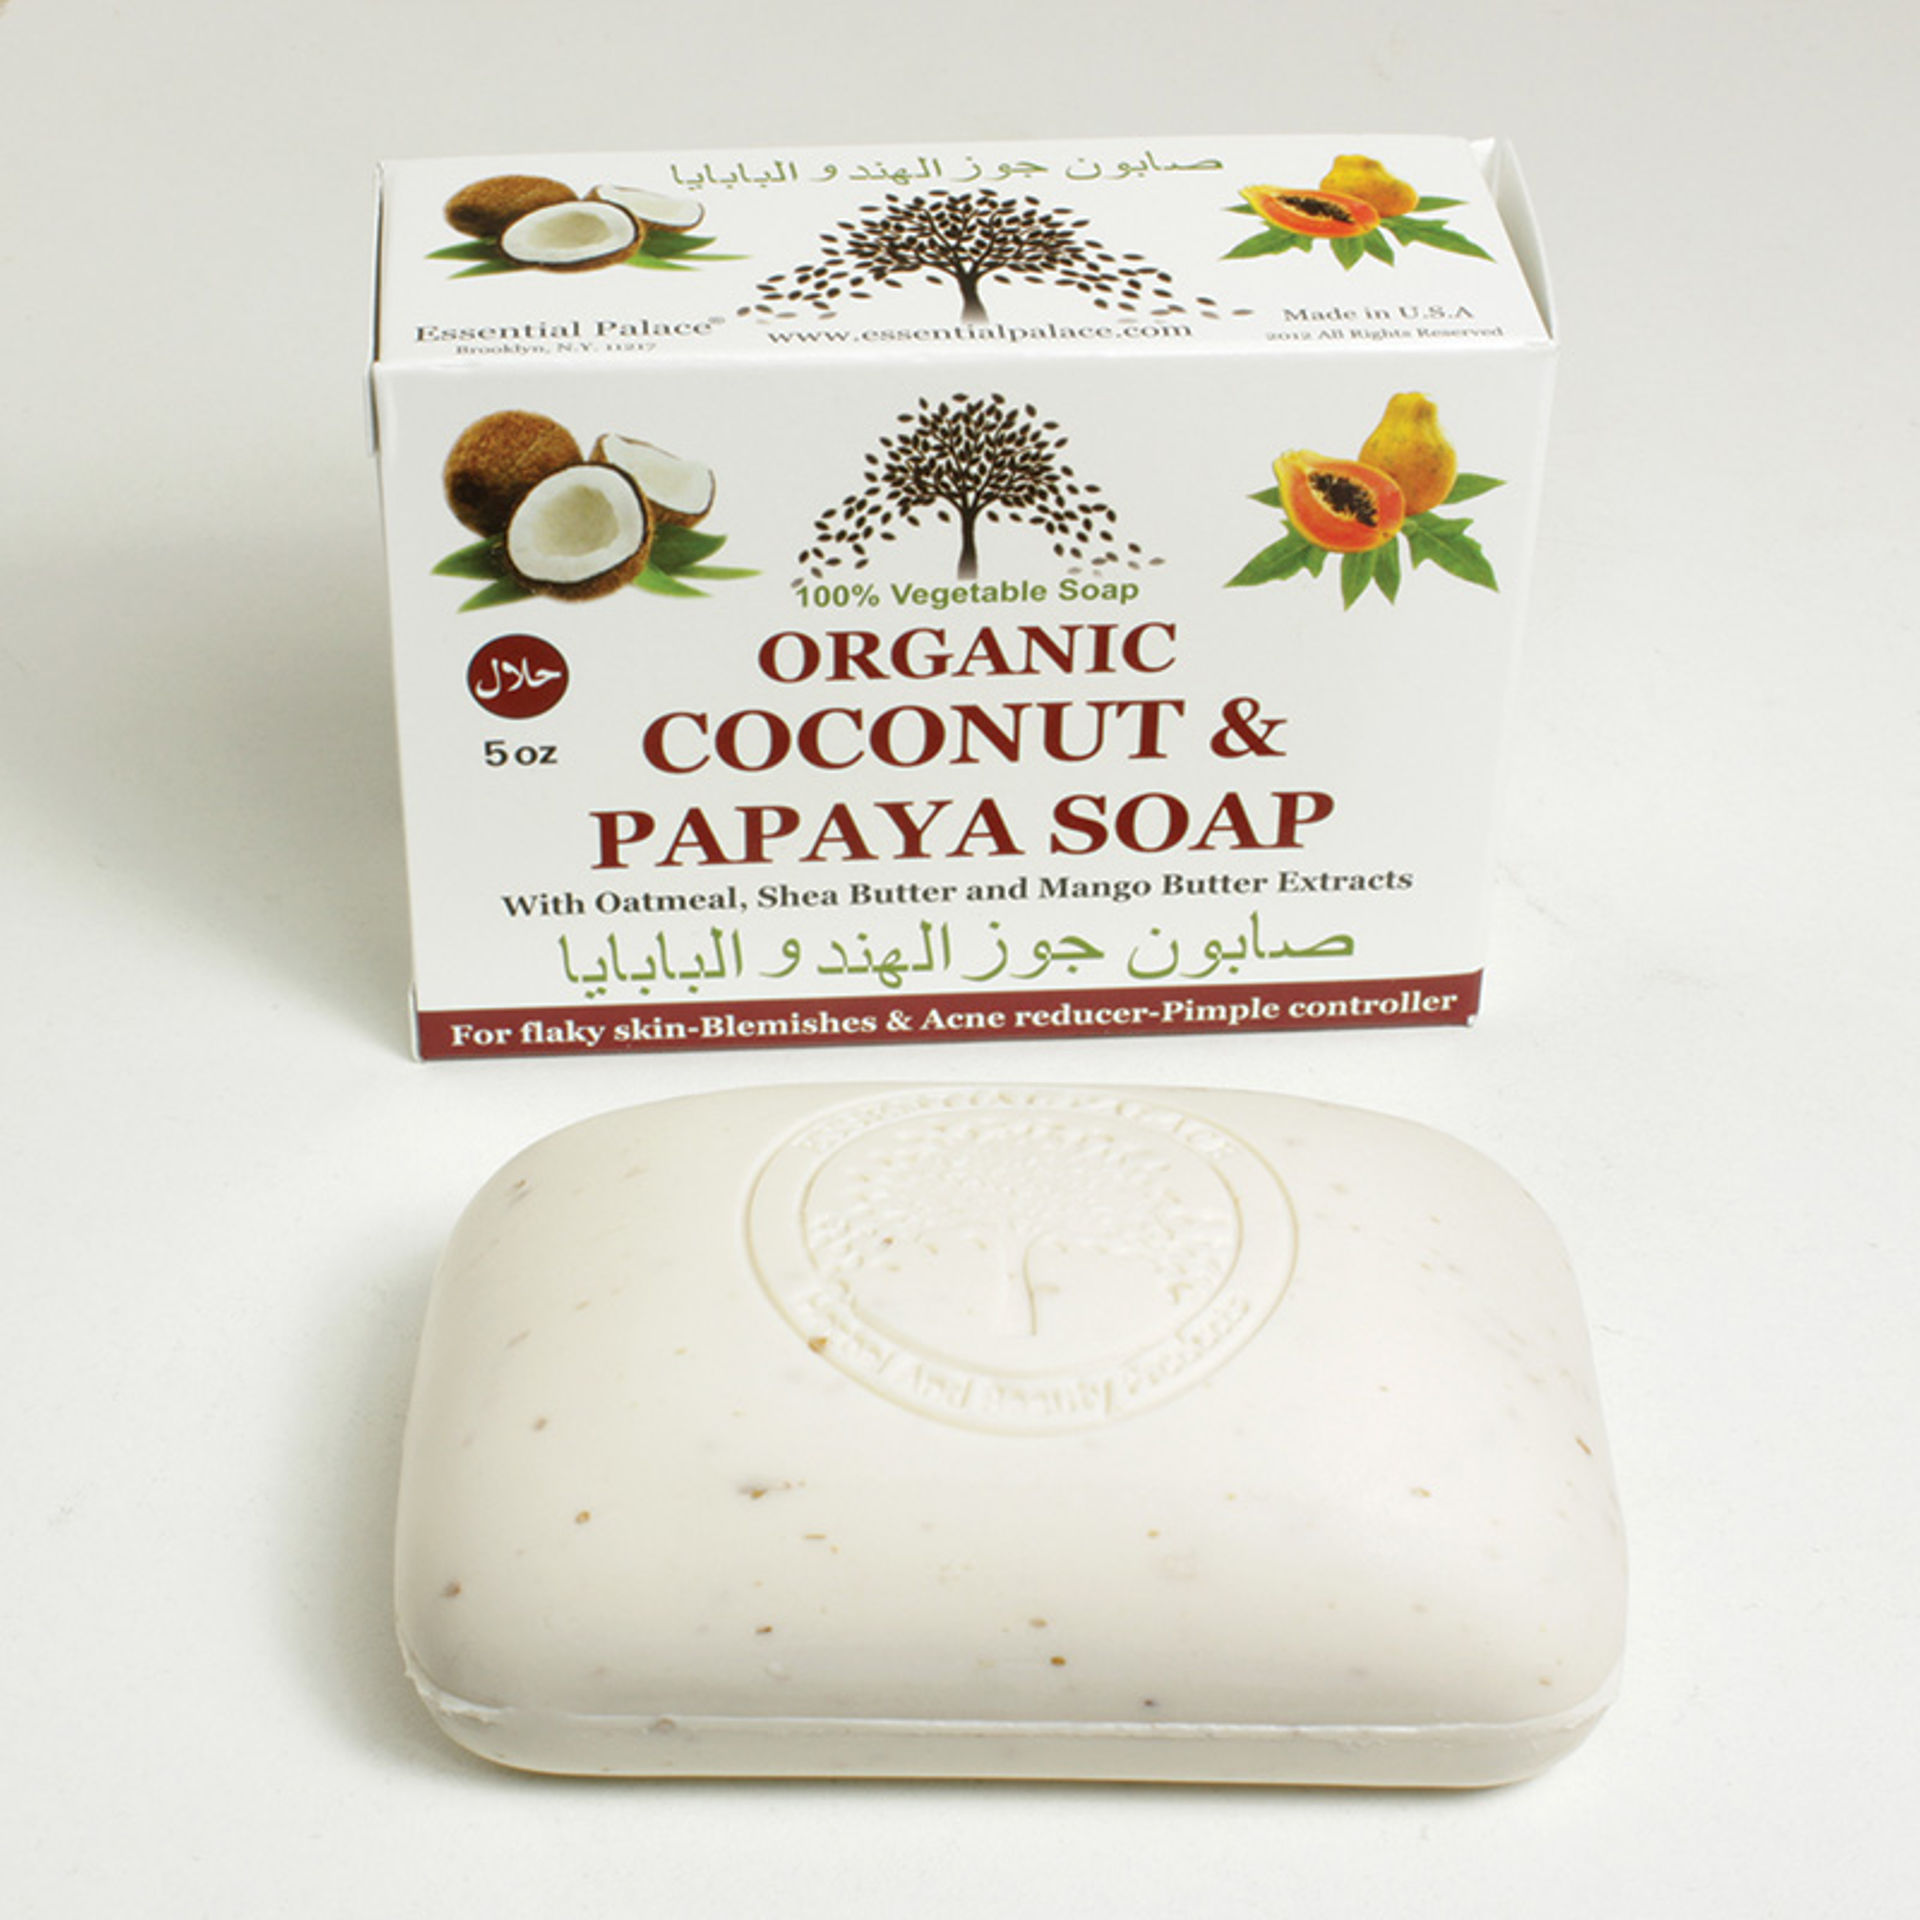 Picture of Organic Coconut & Papaya Soap - 5 oz.